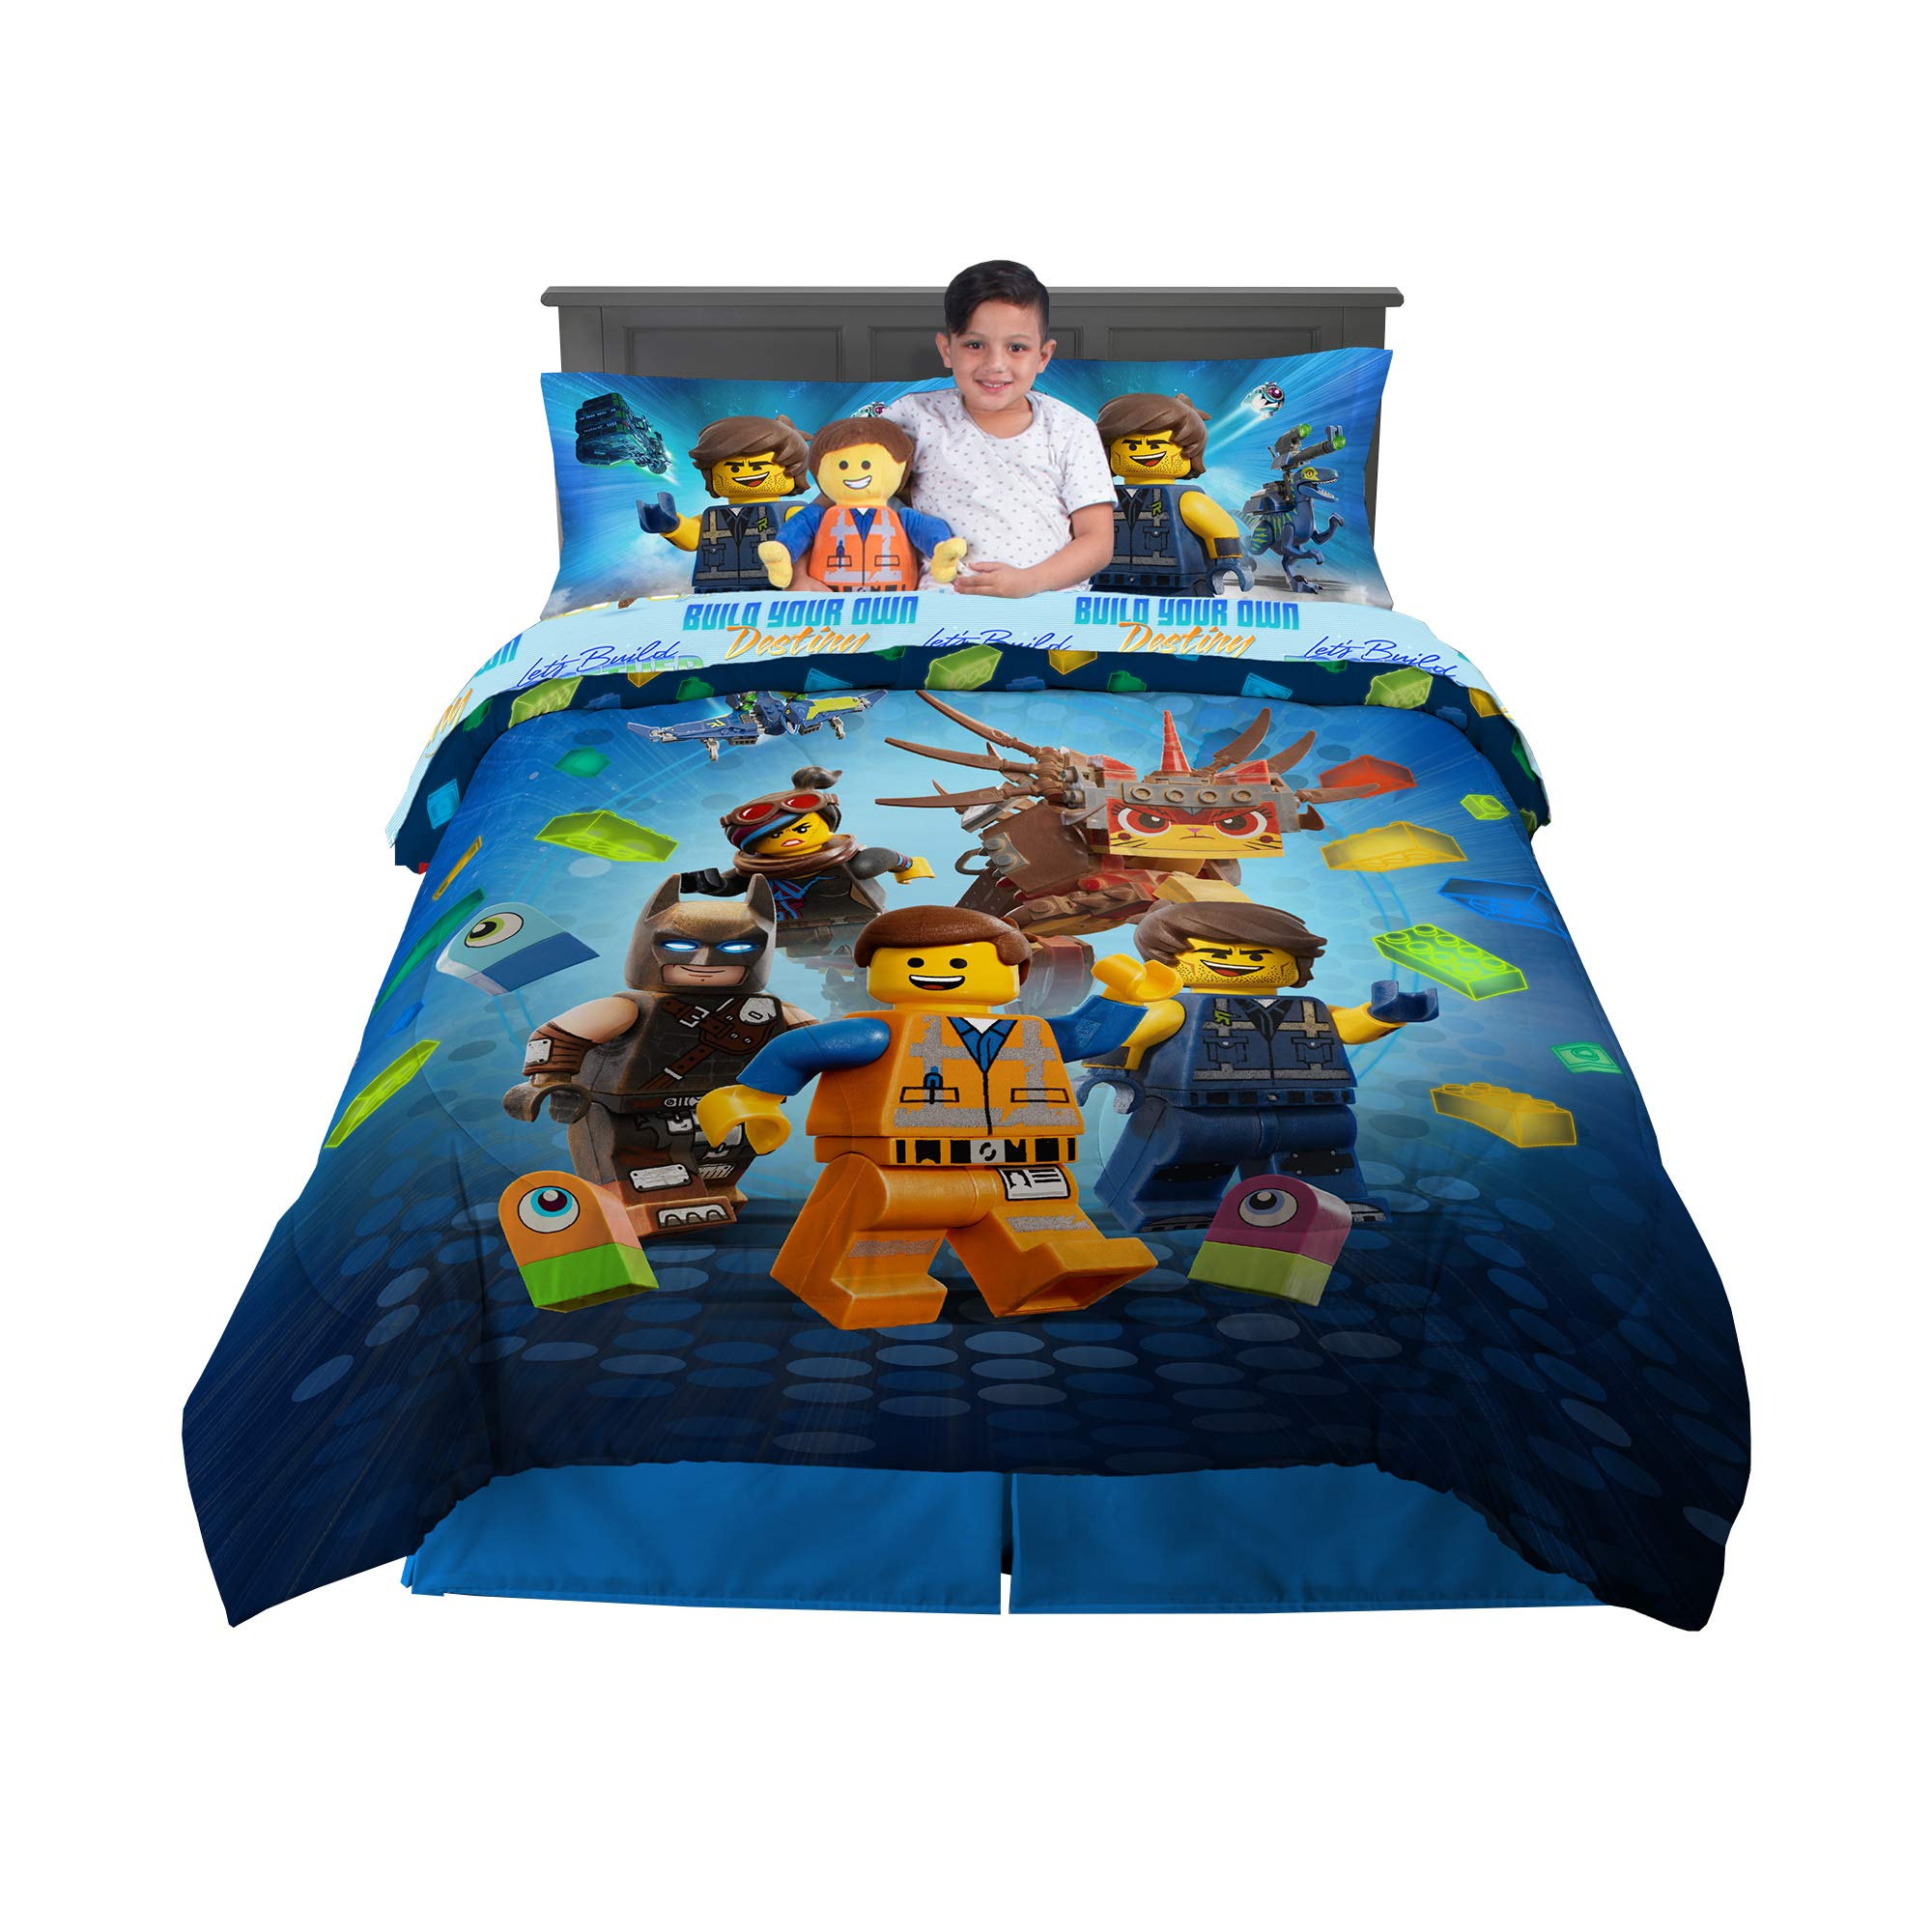 Amazon Com Franco Kids Bedding Super Soft Comforter With Sheets And Cuddle Pillow Bedroom Set 6 Piece Full Size Lego Movie 2 Home Kitchen